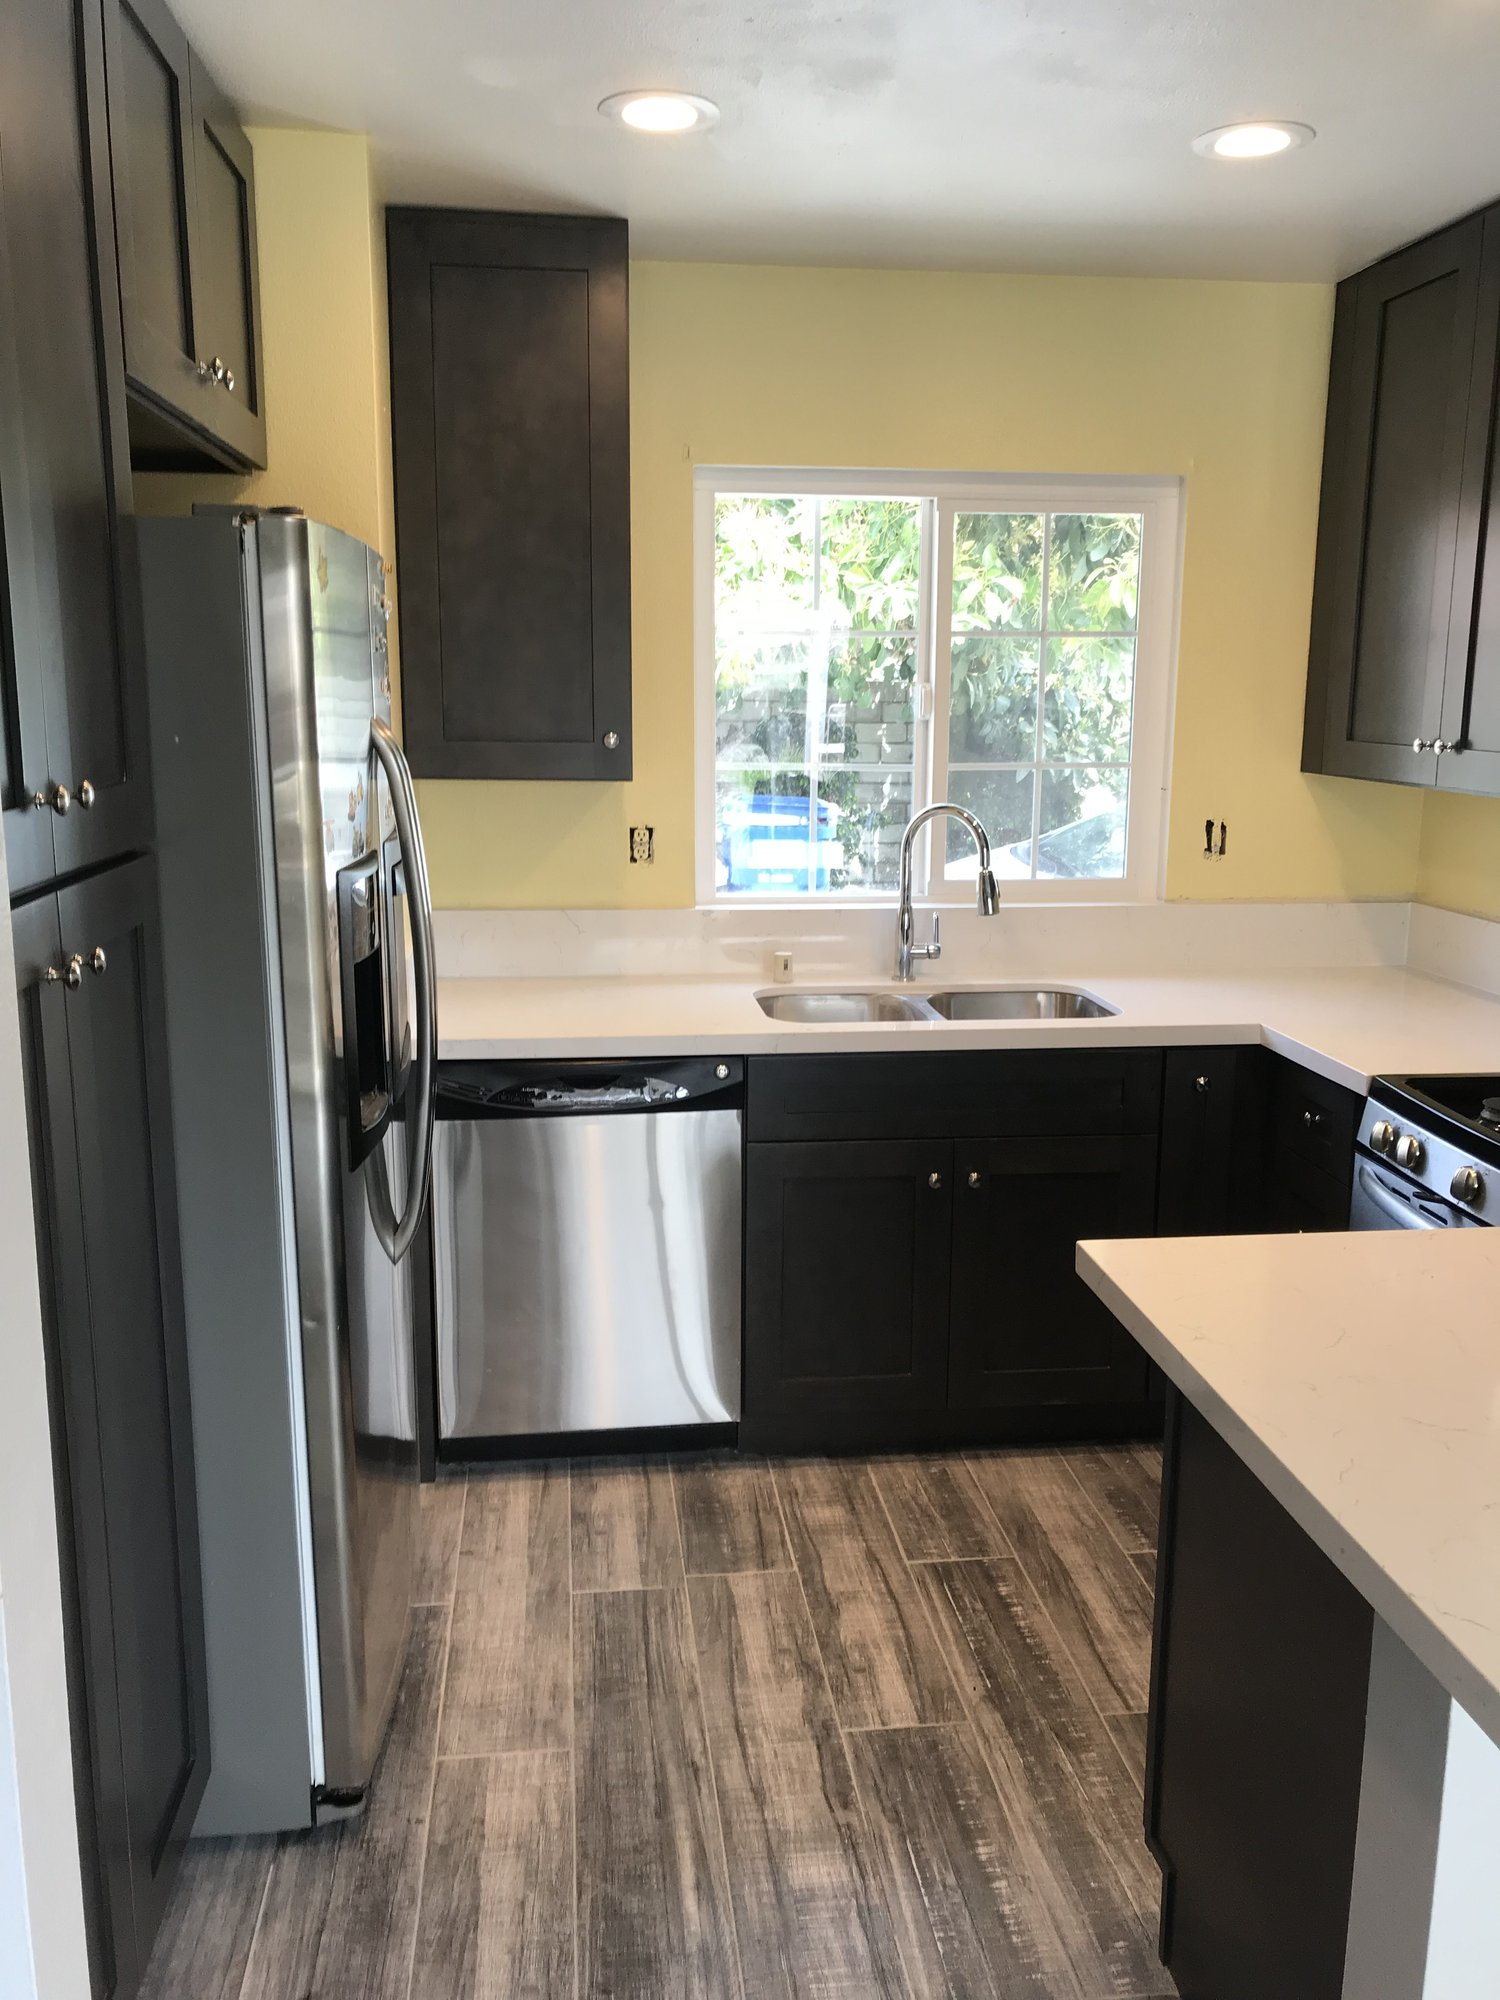 Kitchen Remodeler 101 - Tips For Remodeling A Small Kitchen ...